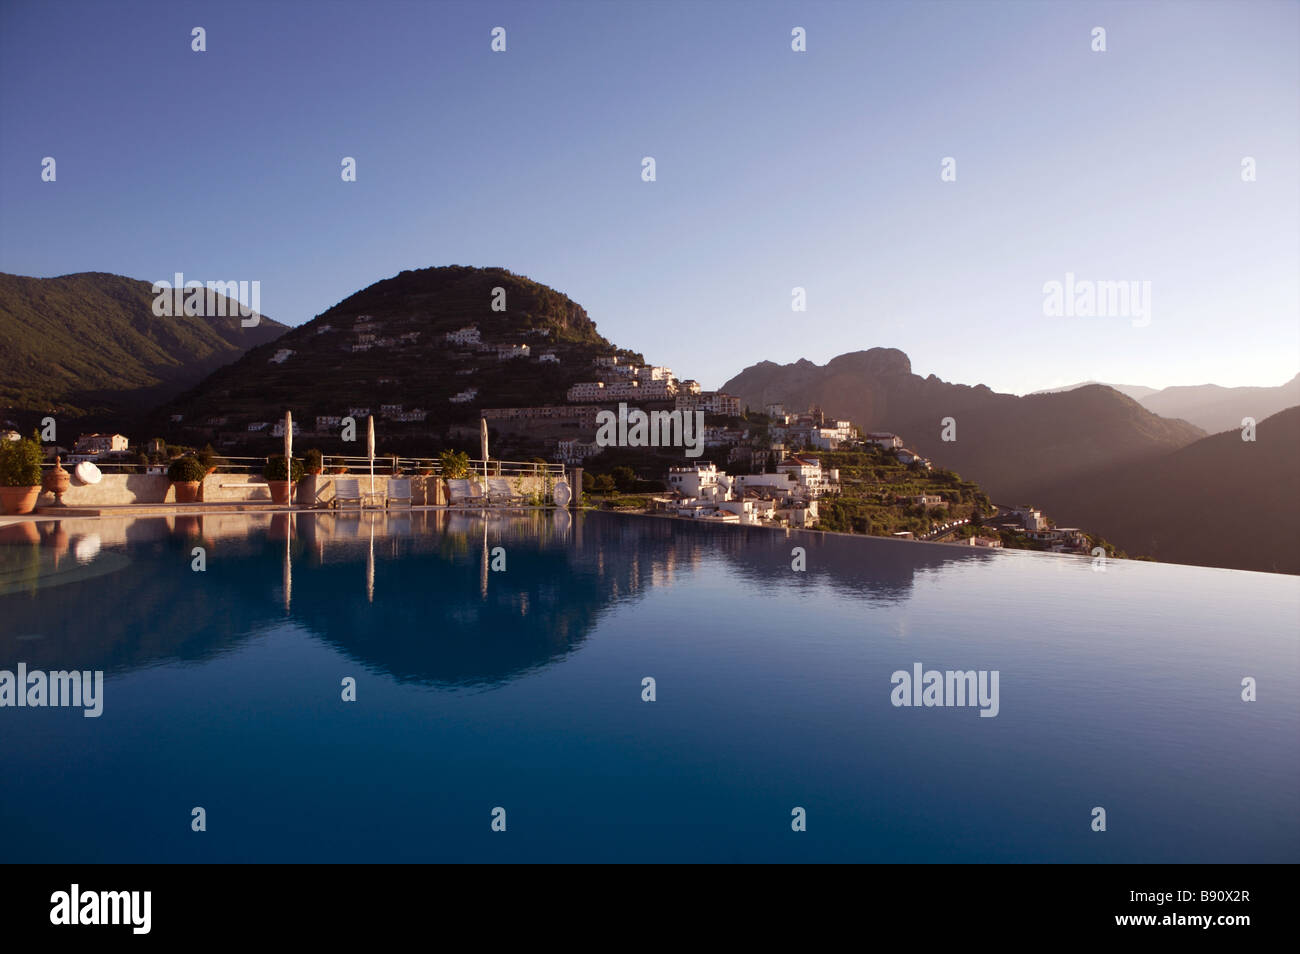 Hotel caruso italy stock photos hotel caruso italy stock for Hotels in ravello with swimming pool